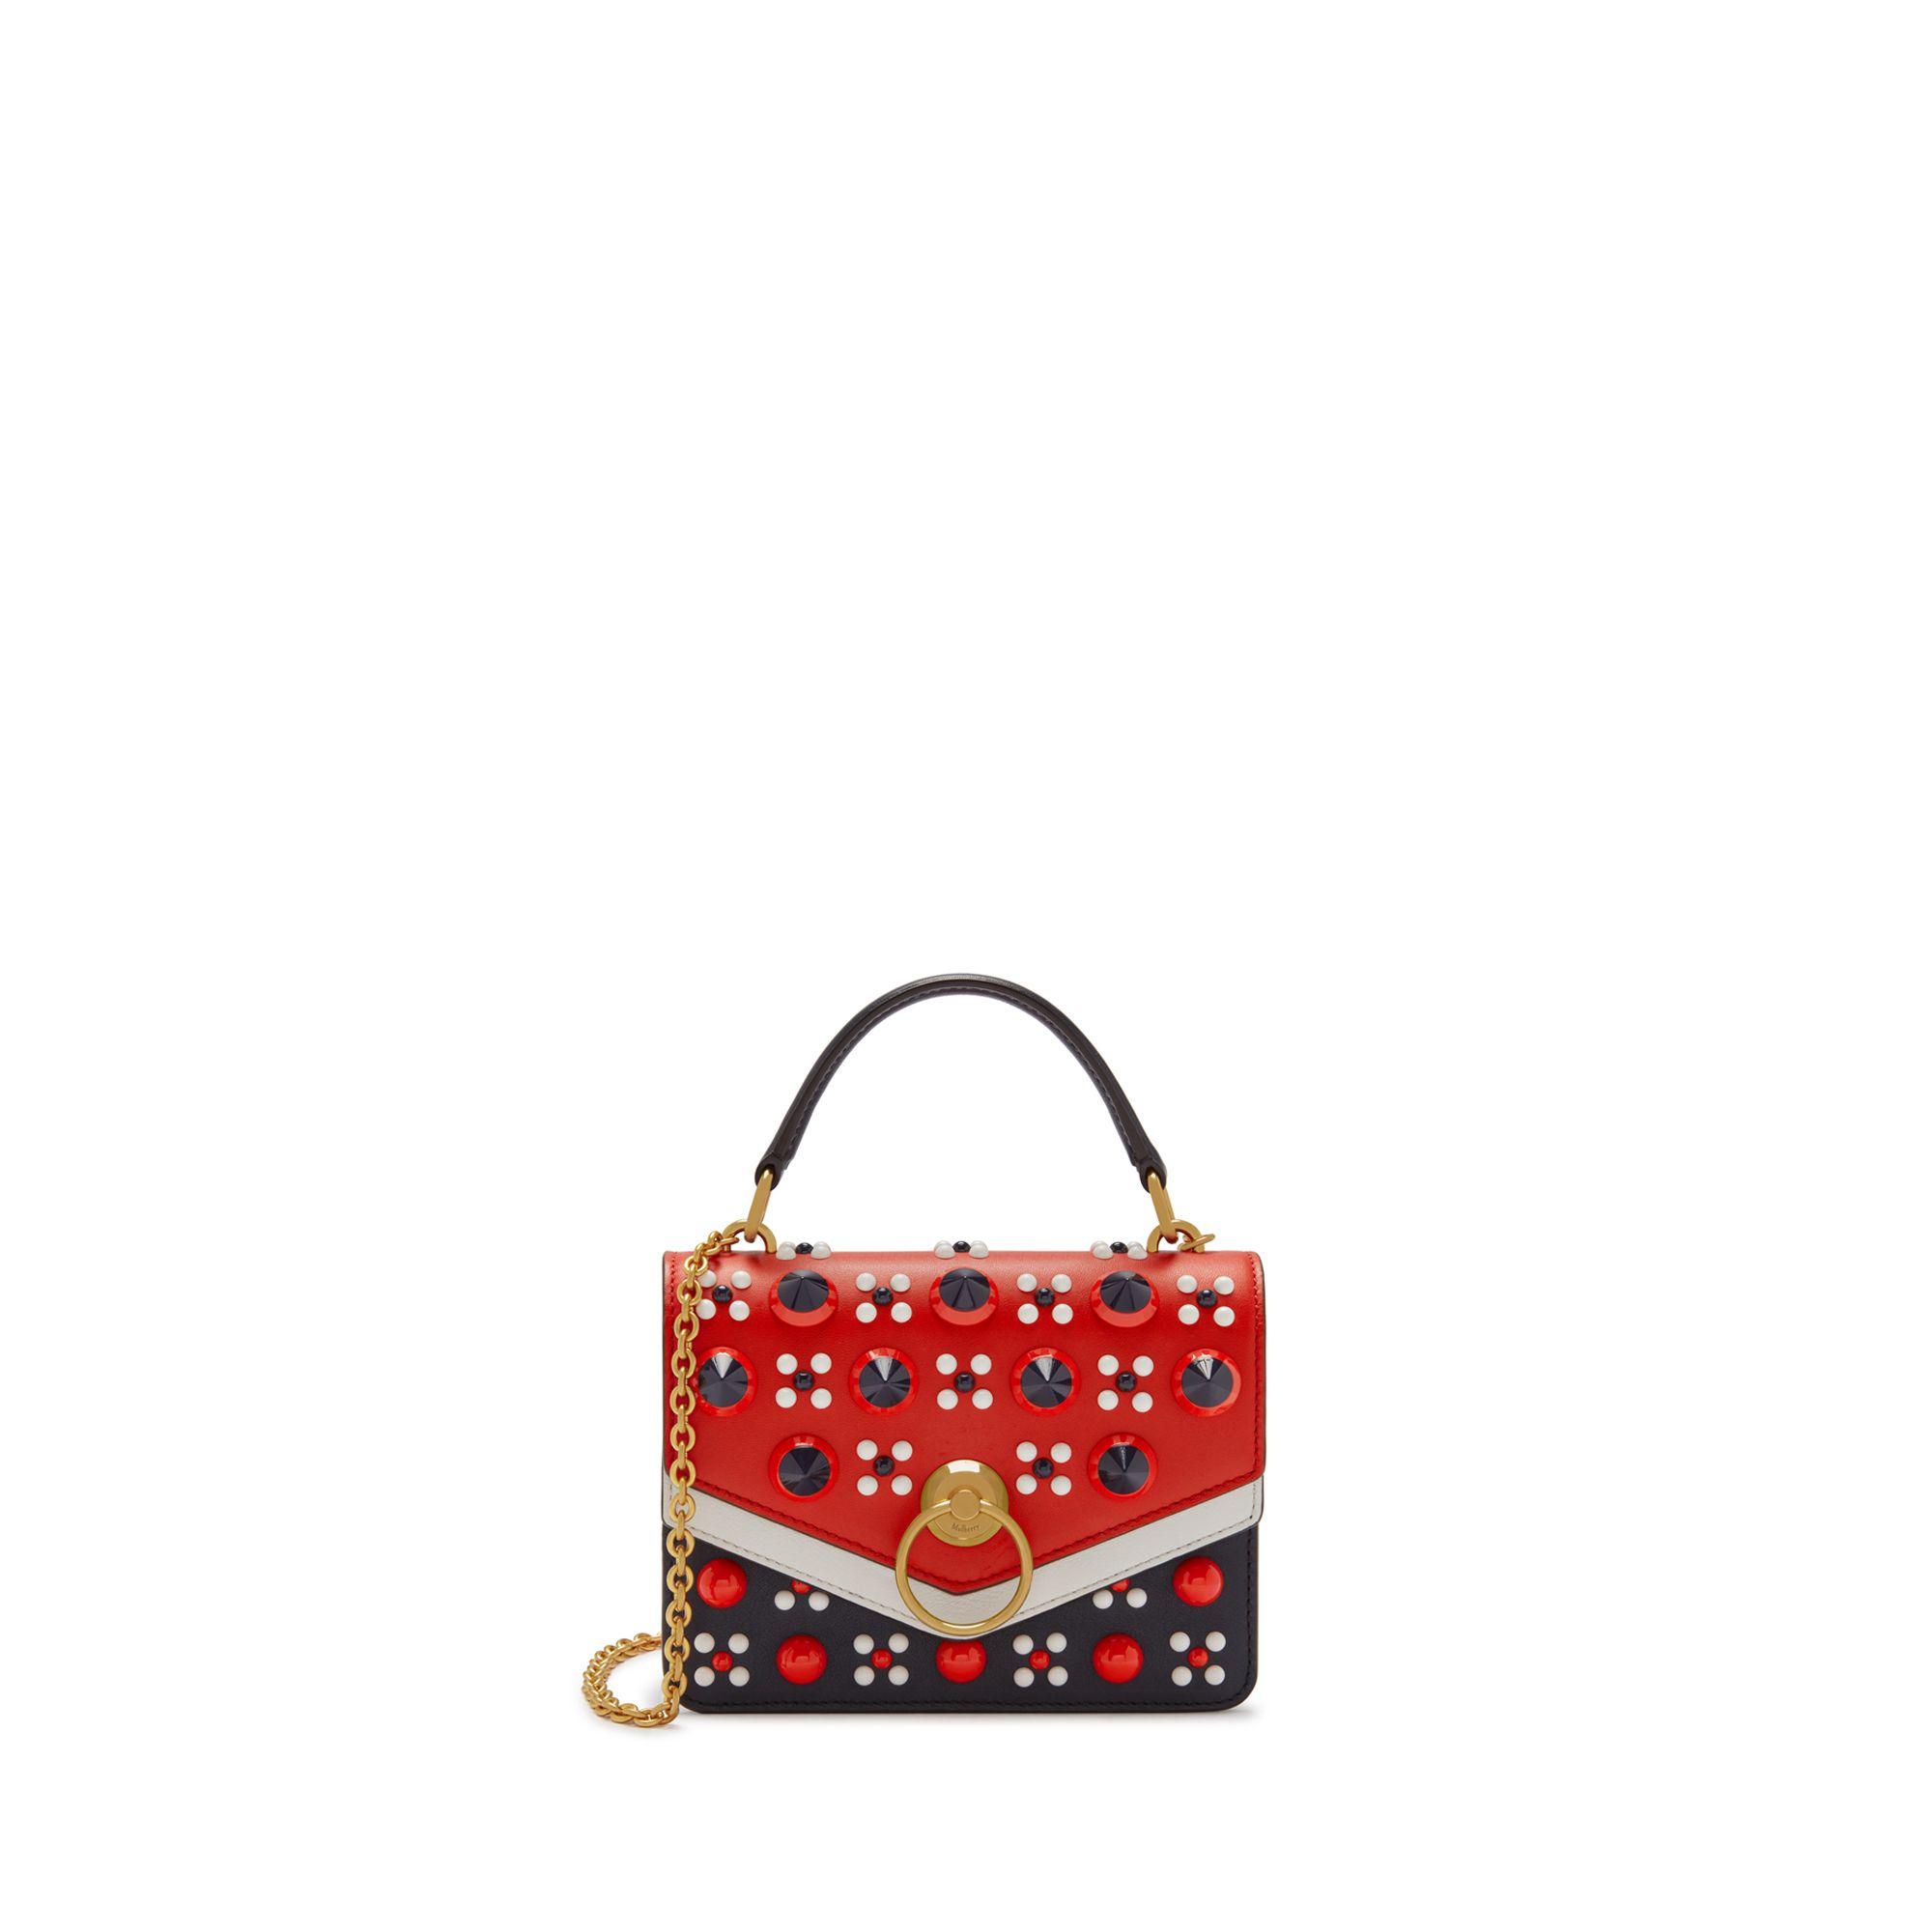 3246209ad02c Mulberry. Women s Small Harlow Satchel In Midnight And Hibiscus Red Silky  Calf ...